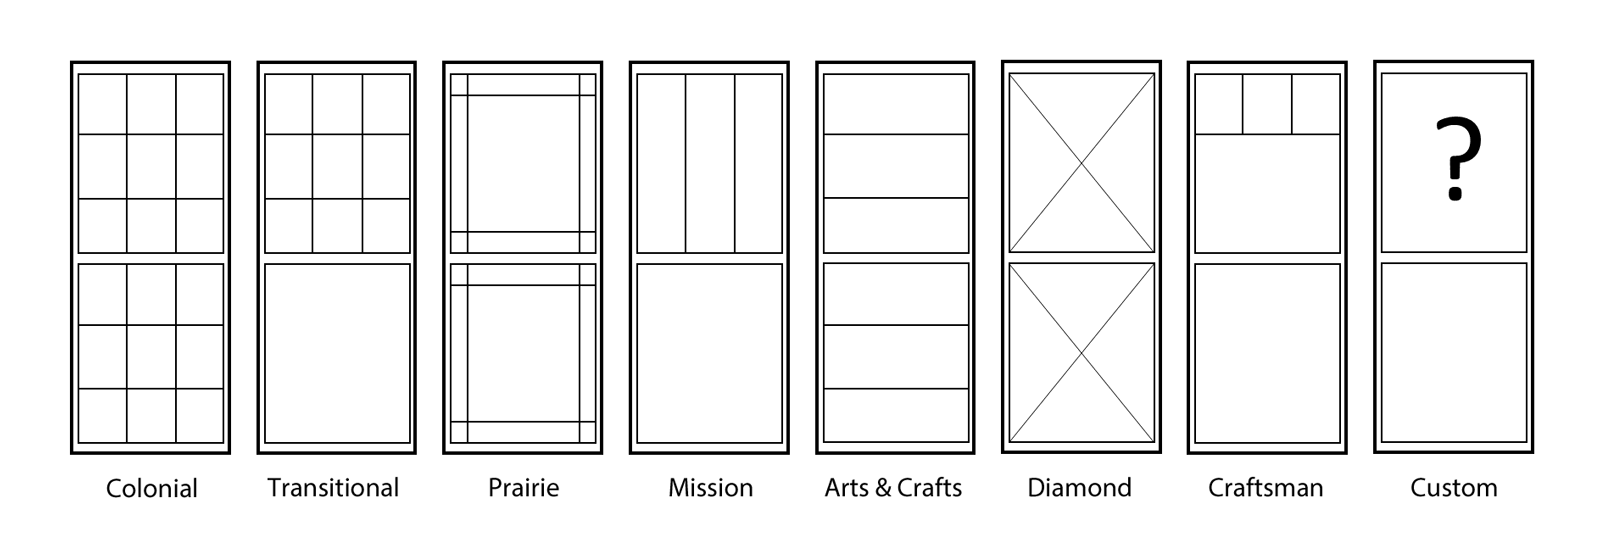 Window styles for double hung windows:Colonial, Traditional, Prairie, Mission, Arts & Crafts, Diamond, Craftsman, Custom